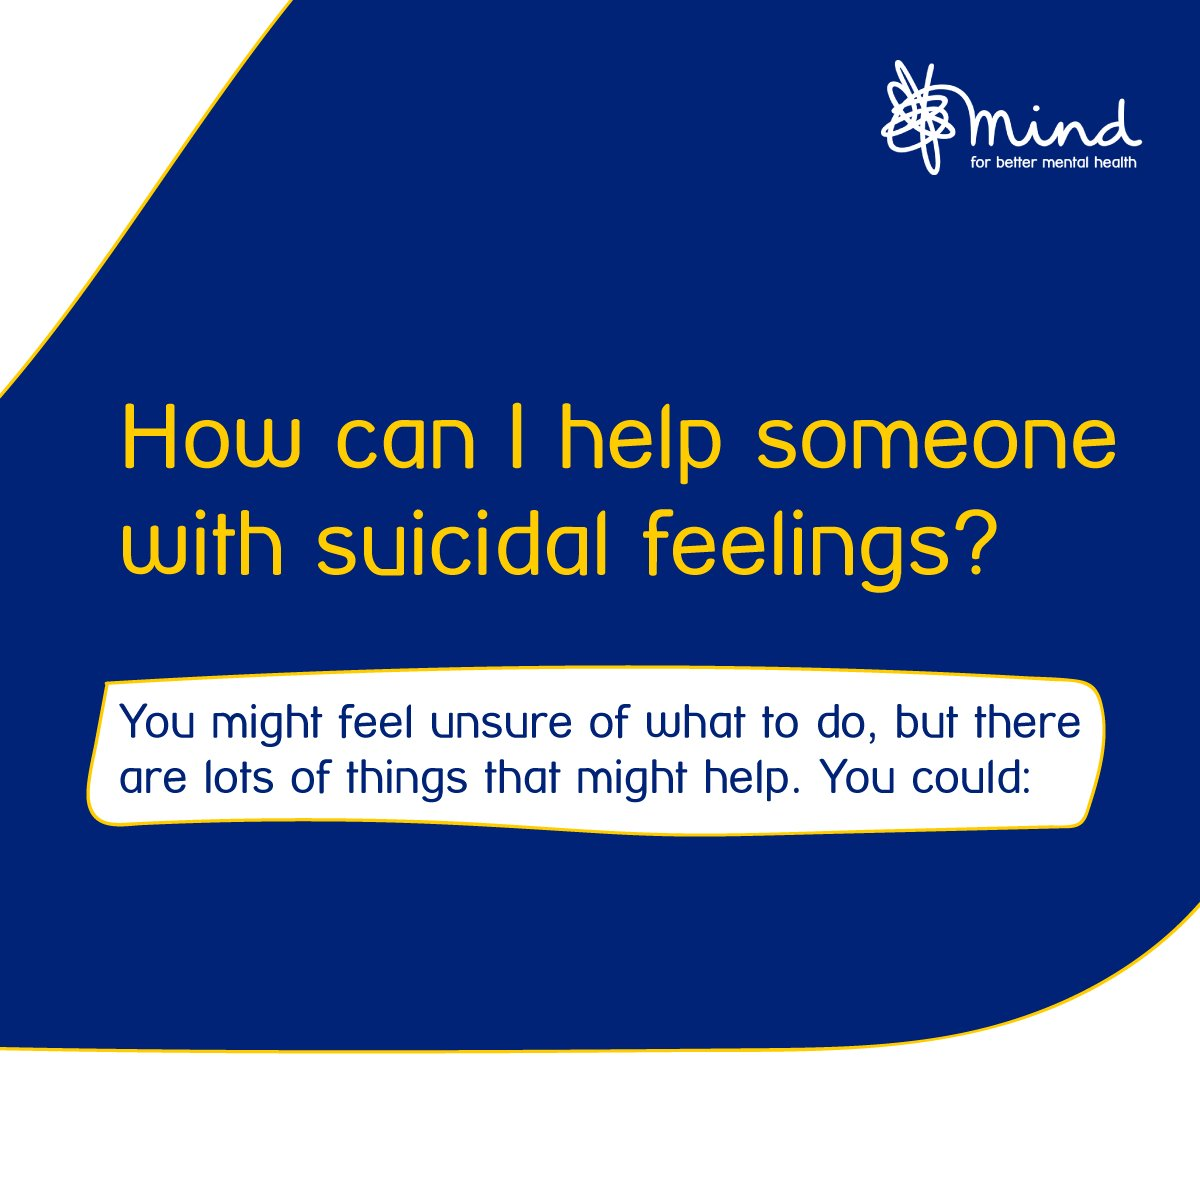 It can be distressing if youre worried about someone who feels suicidal. You may feel unsure of what to do, but there are lots of things that might help. #WSPD bit.ly/2M2dirZ